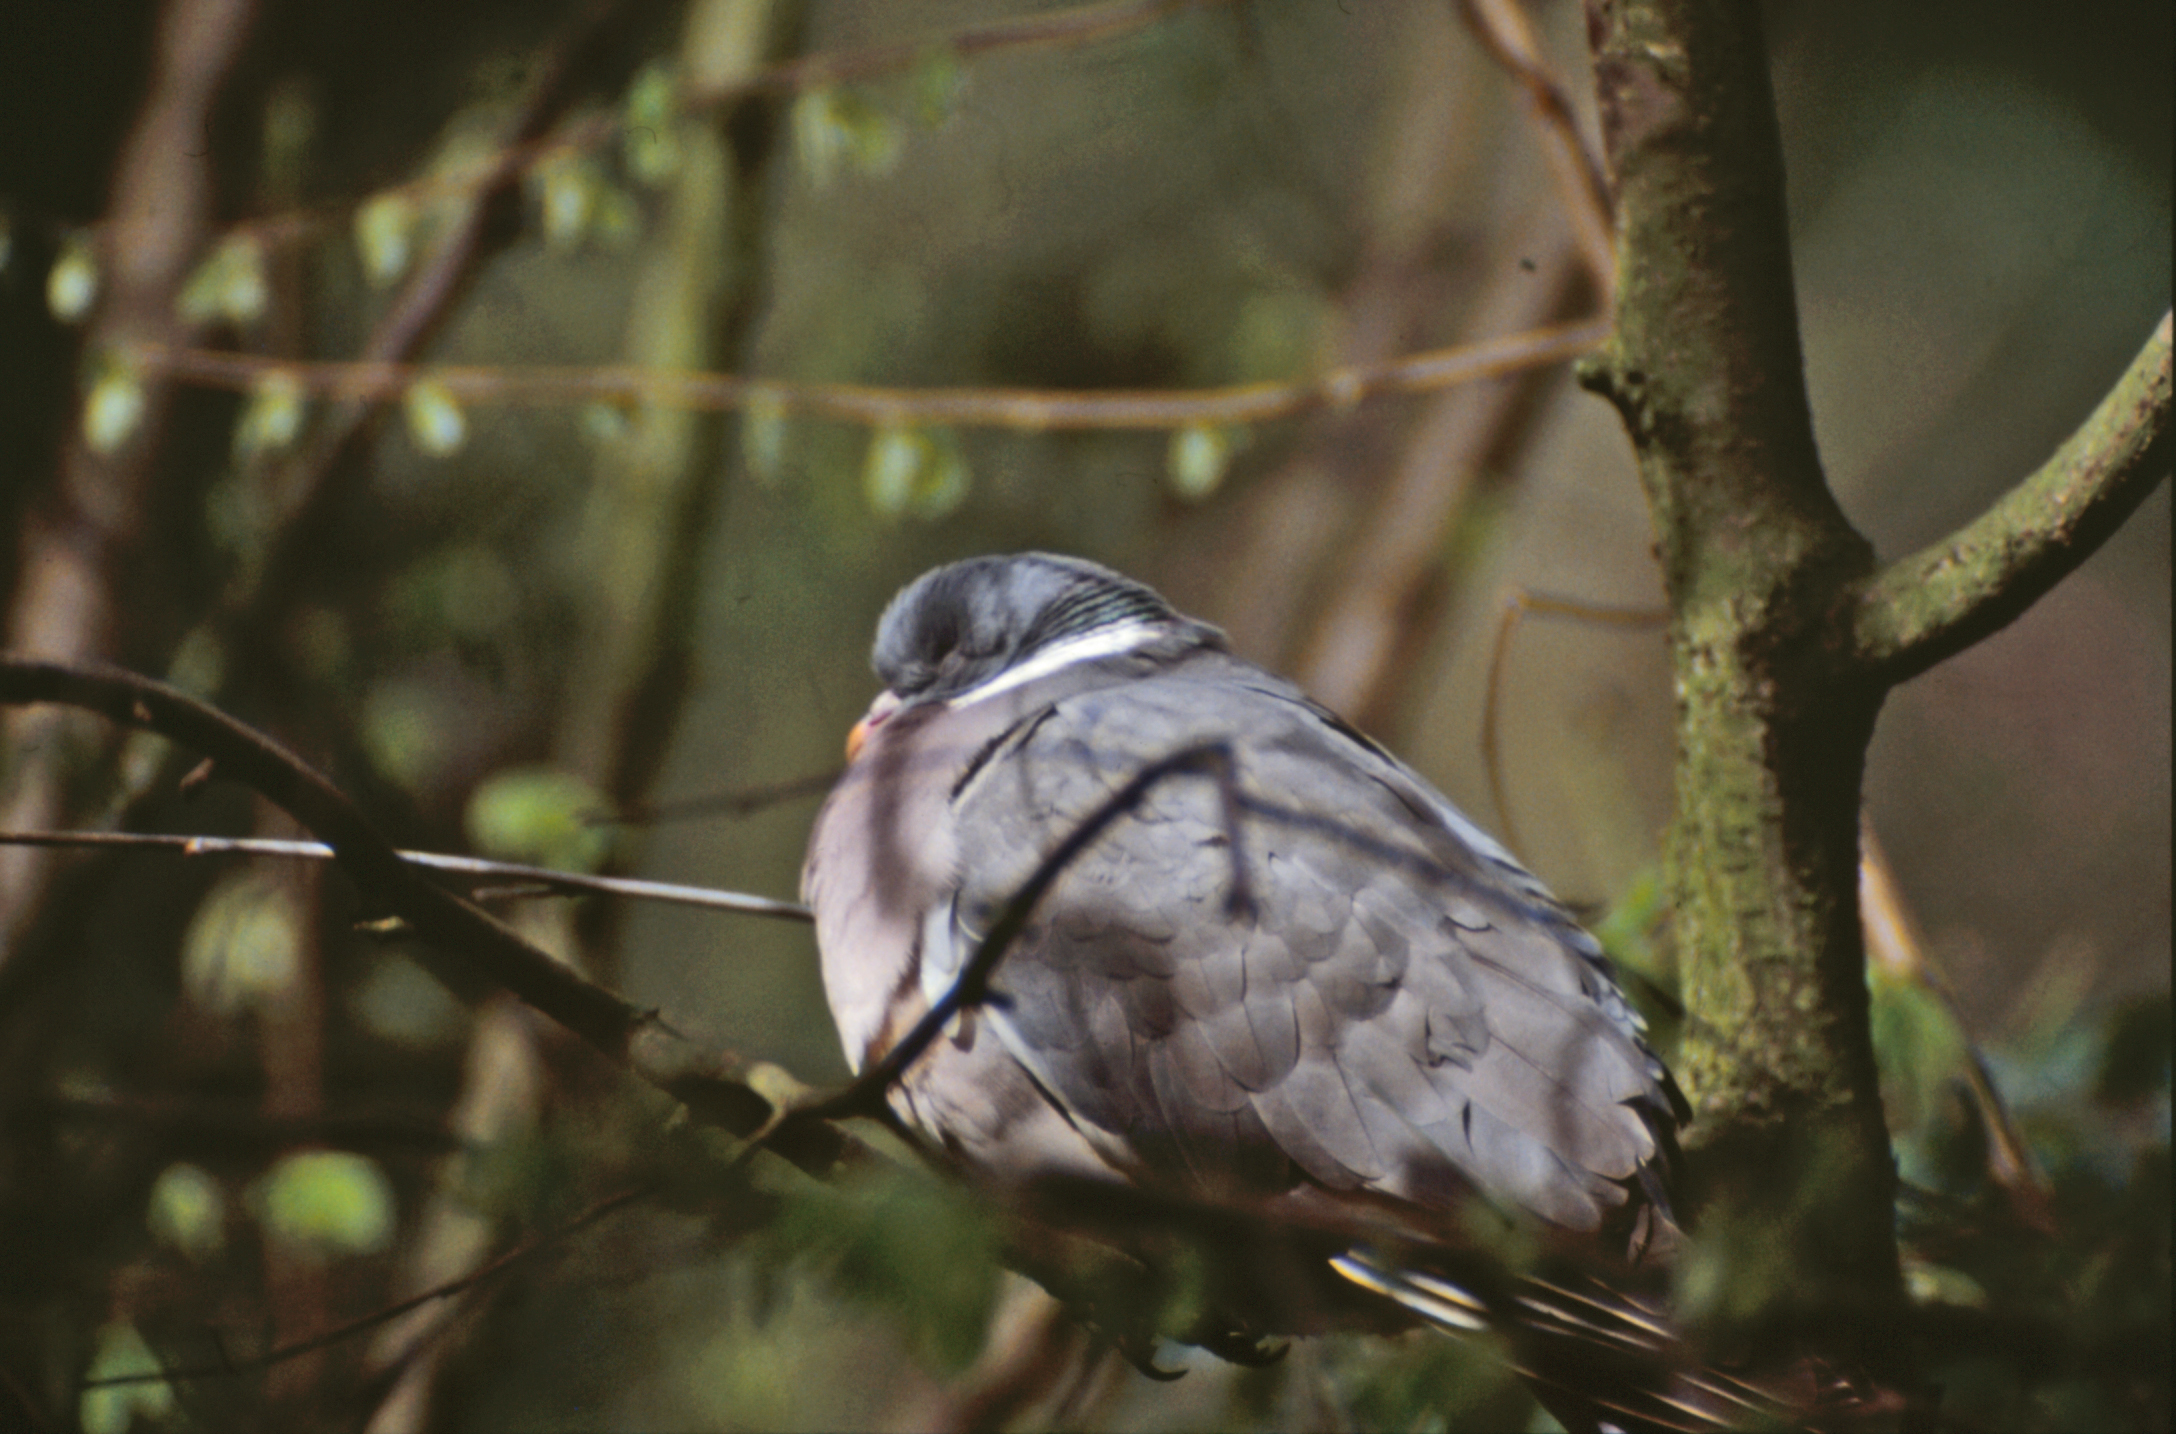 Bird in tree, Animal, Bird, Branches, Feathers, HQ Photo